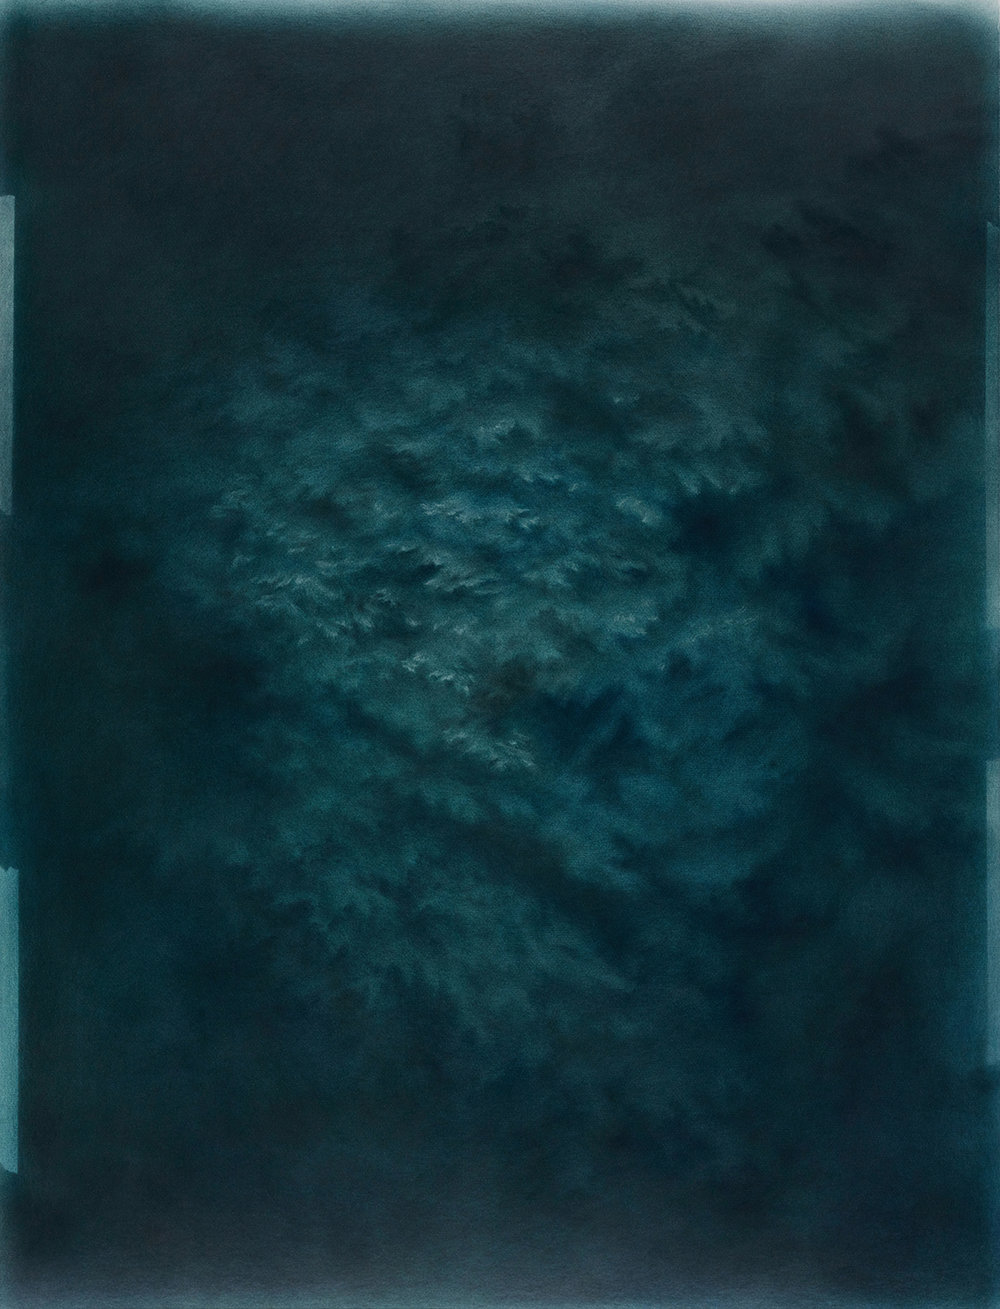 AG_2018_Untitled I_Dry pigments on Arches paper (Prussian Blue, Van Dyke Brown)_30%22 x 40%22.jpg